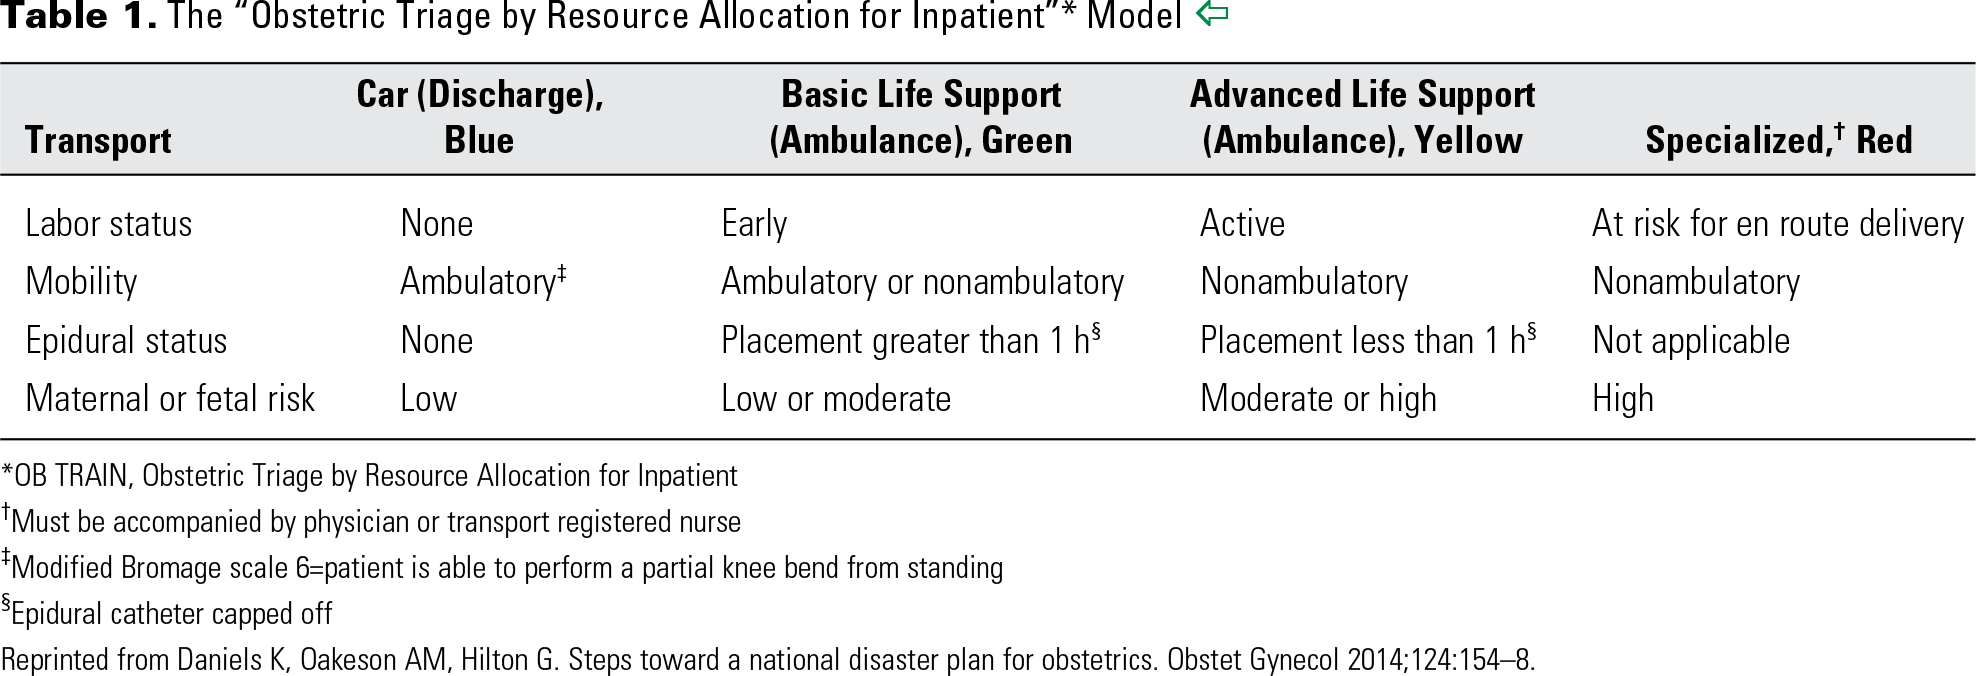 "Table 1. The ""Obstetric Triage by Resource Allocation for Inpatient""* Model"